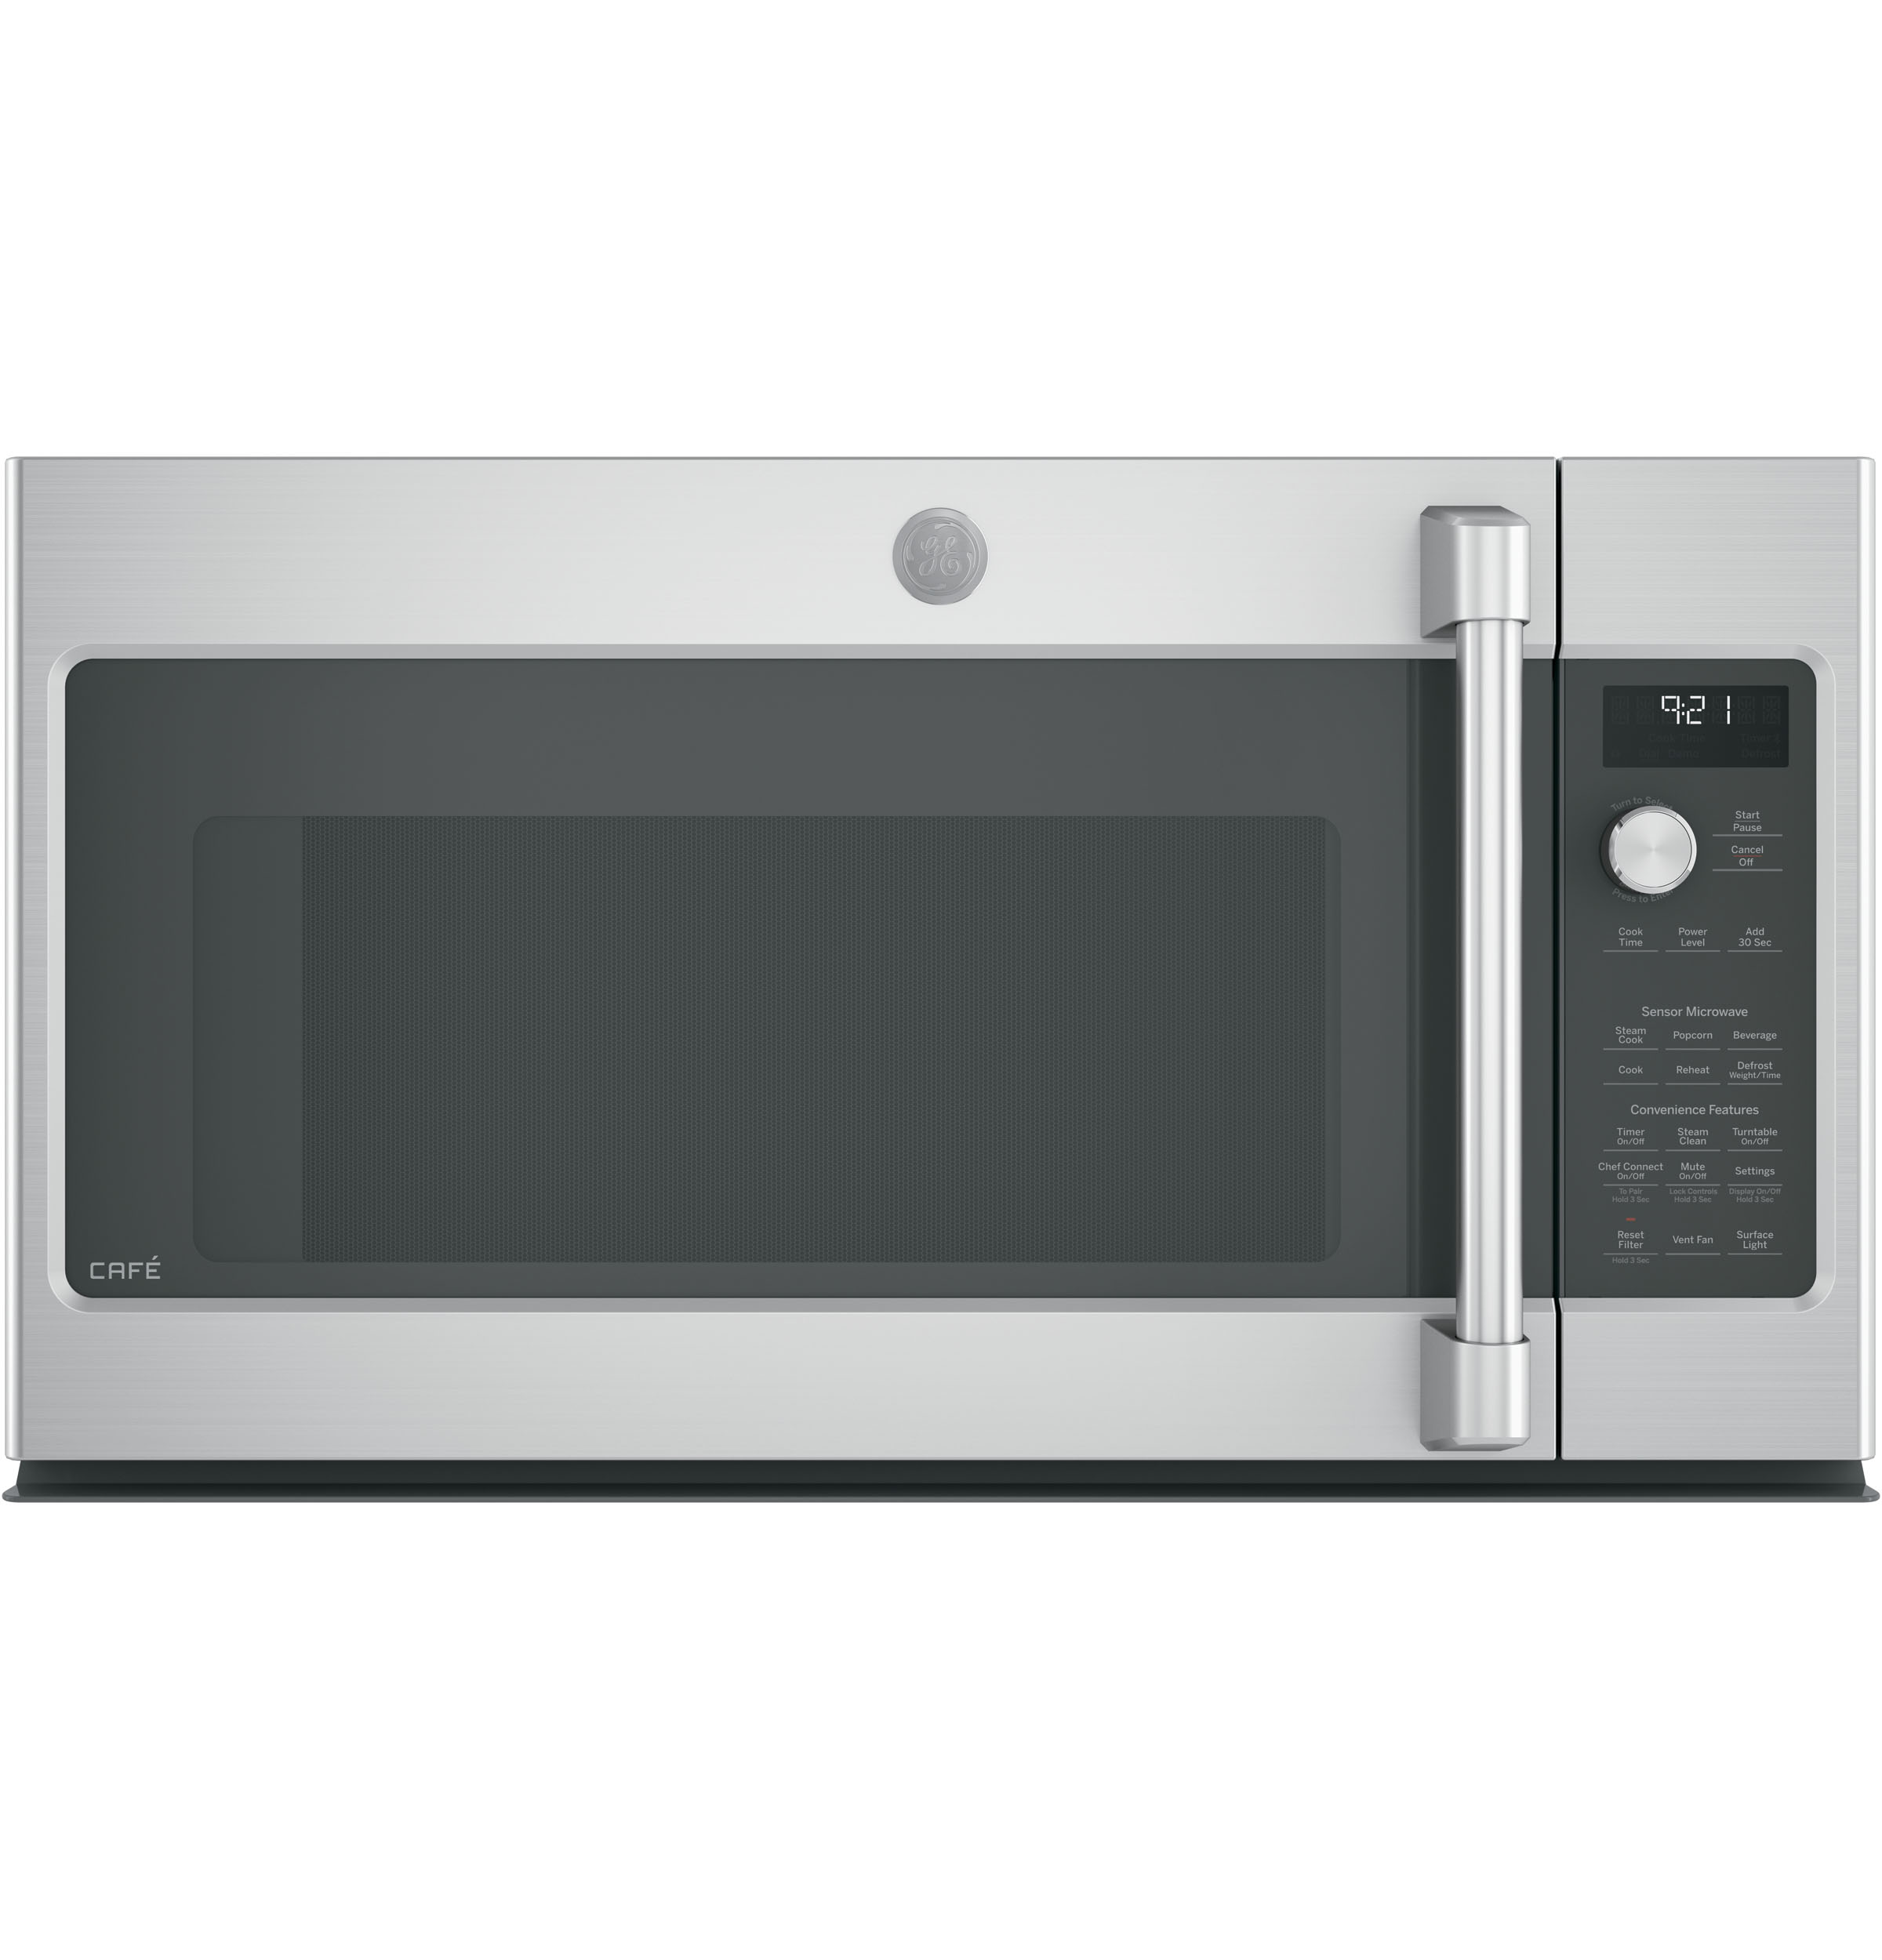 GE Café™ Series 2.1 Cu. Ft. Over-the-Range Microwave Oven